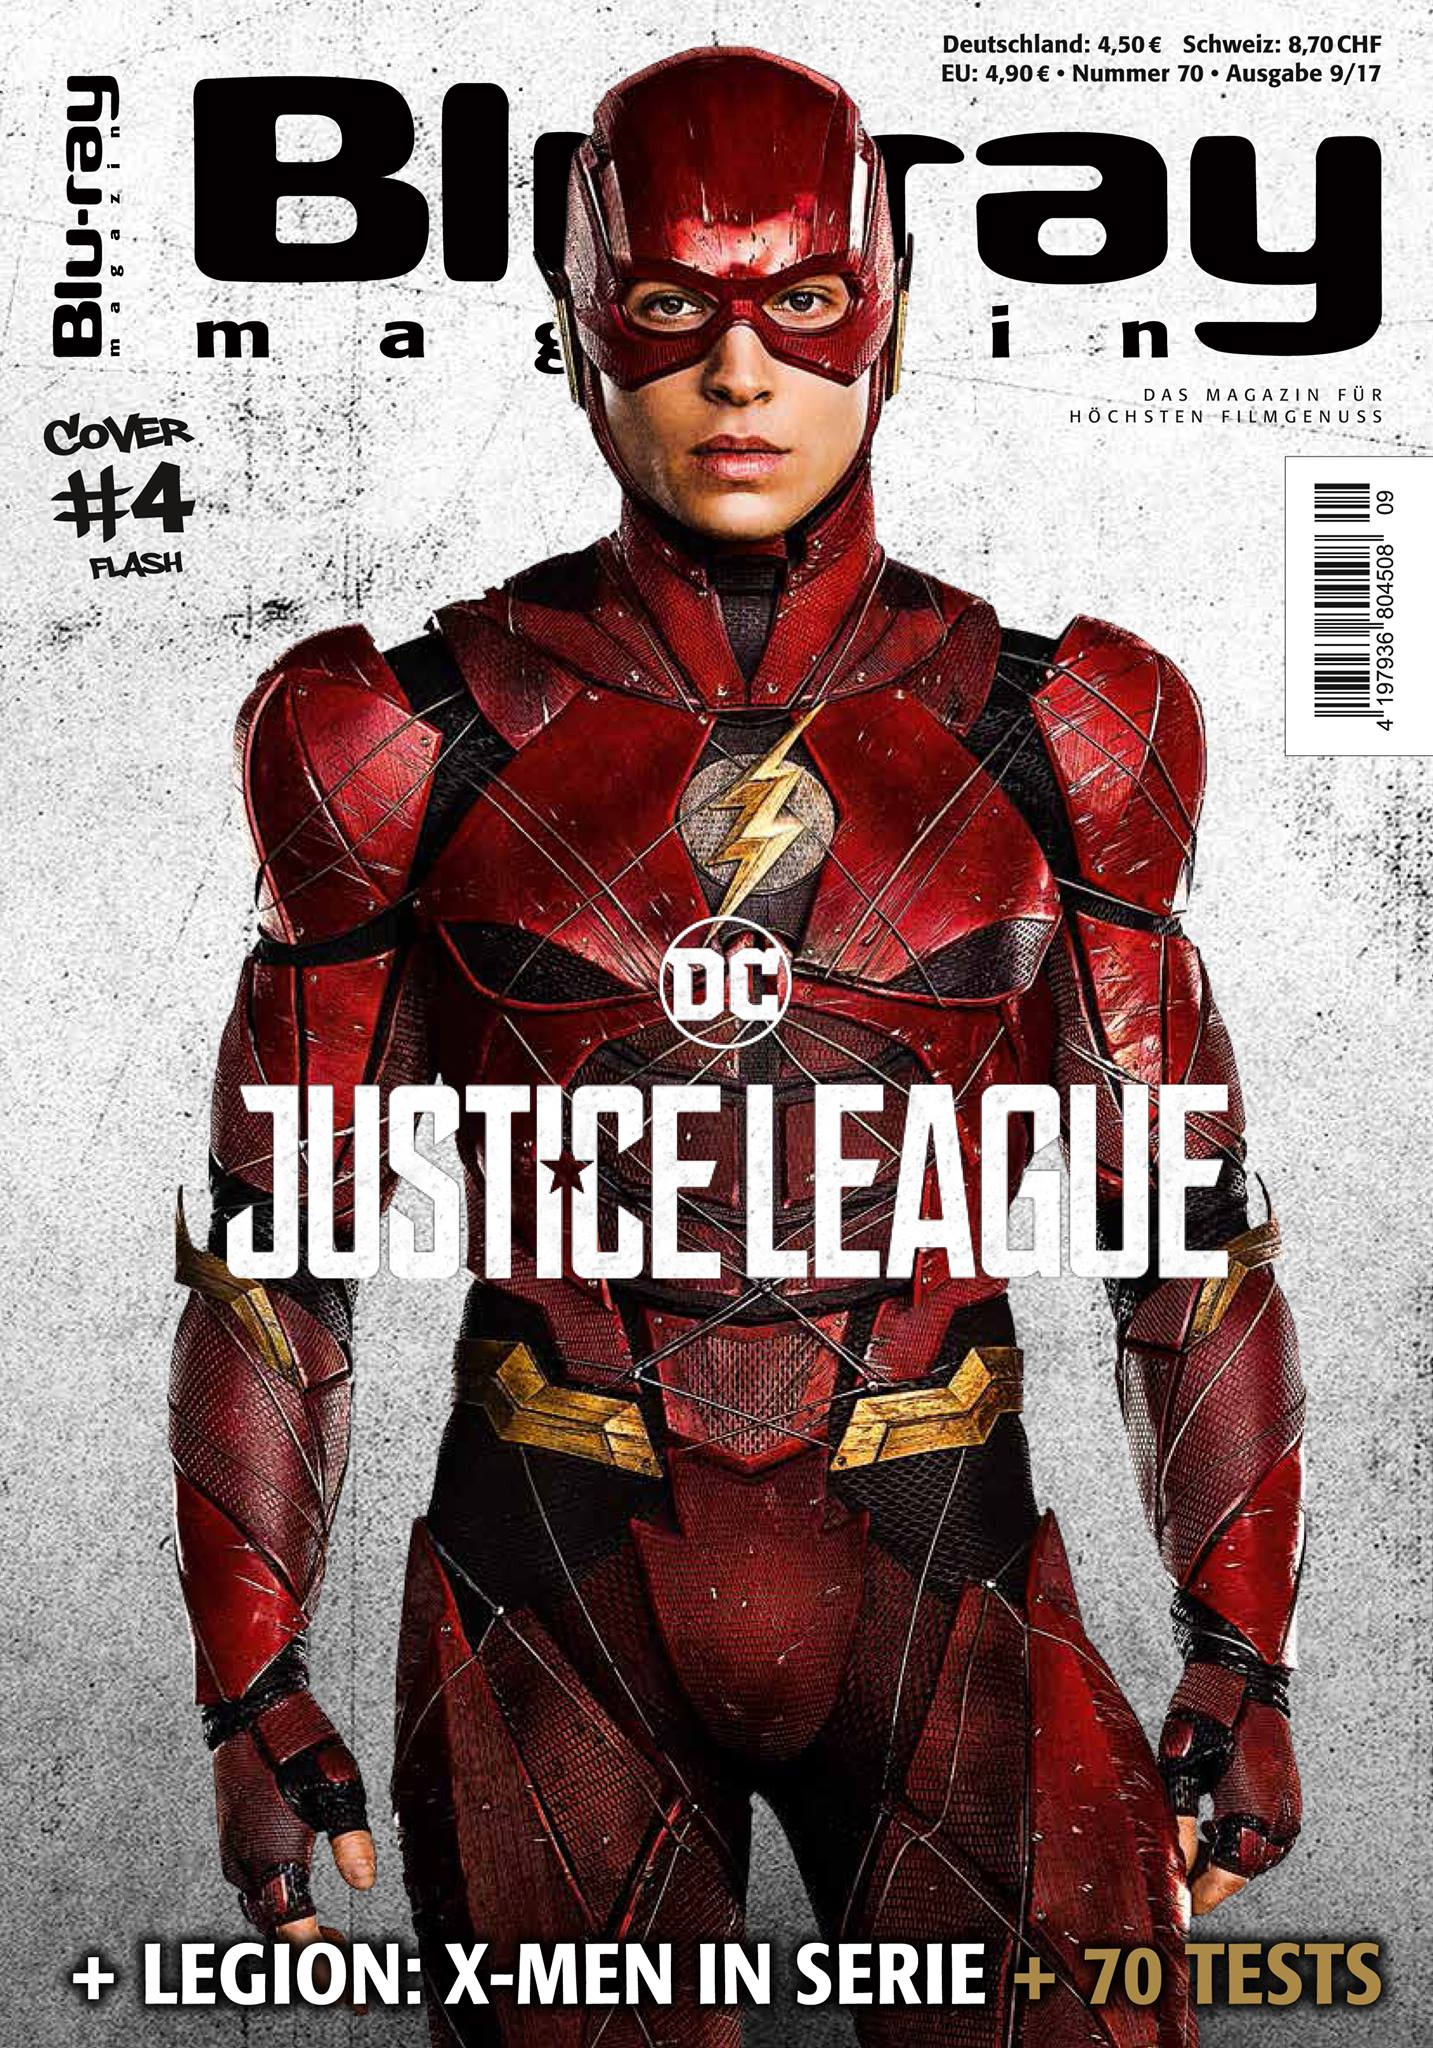 New Look At Ben Affleck As Batman And The Justice League On Blu - Magazines look superheroes real